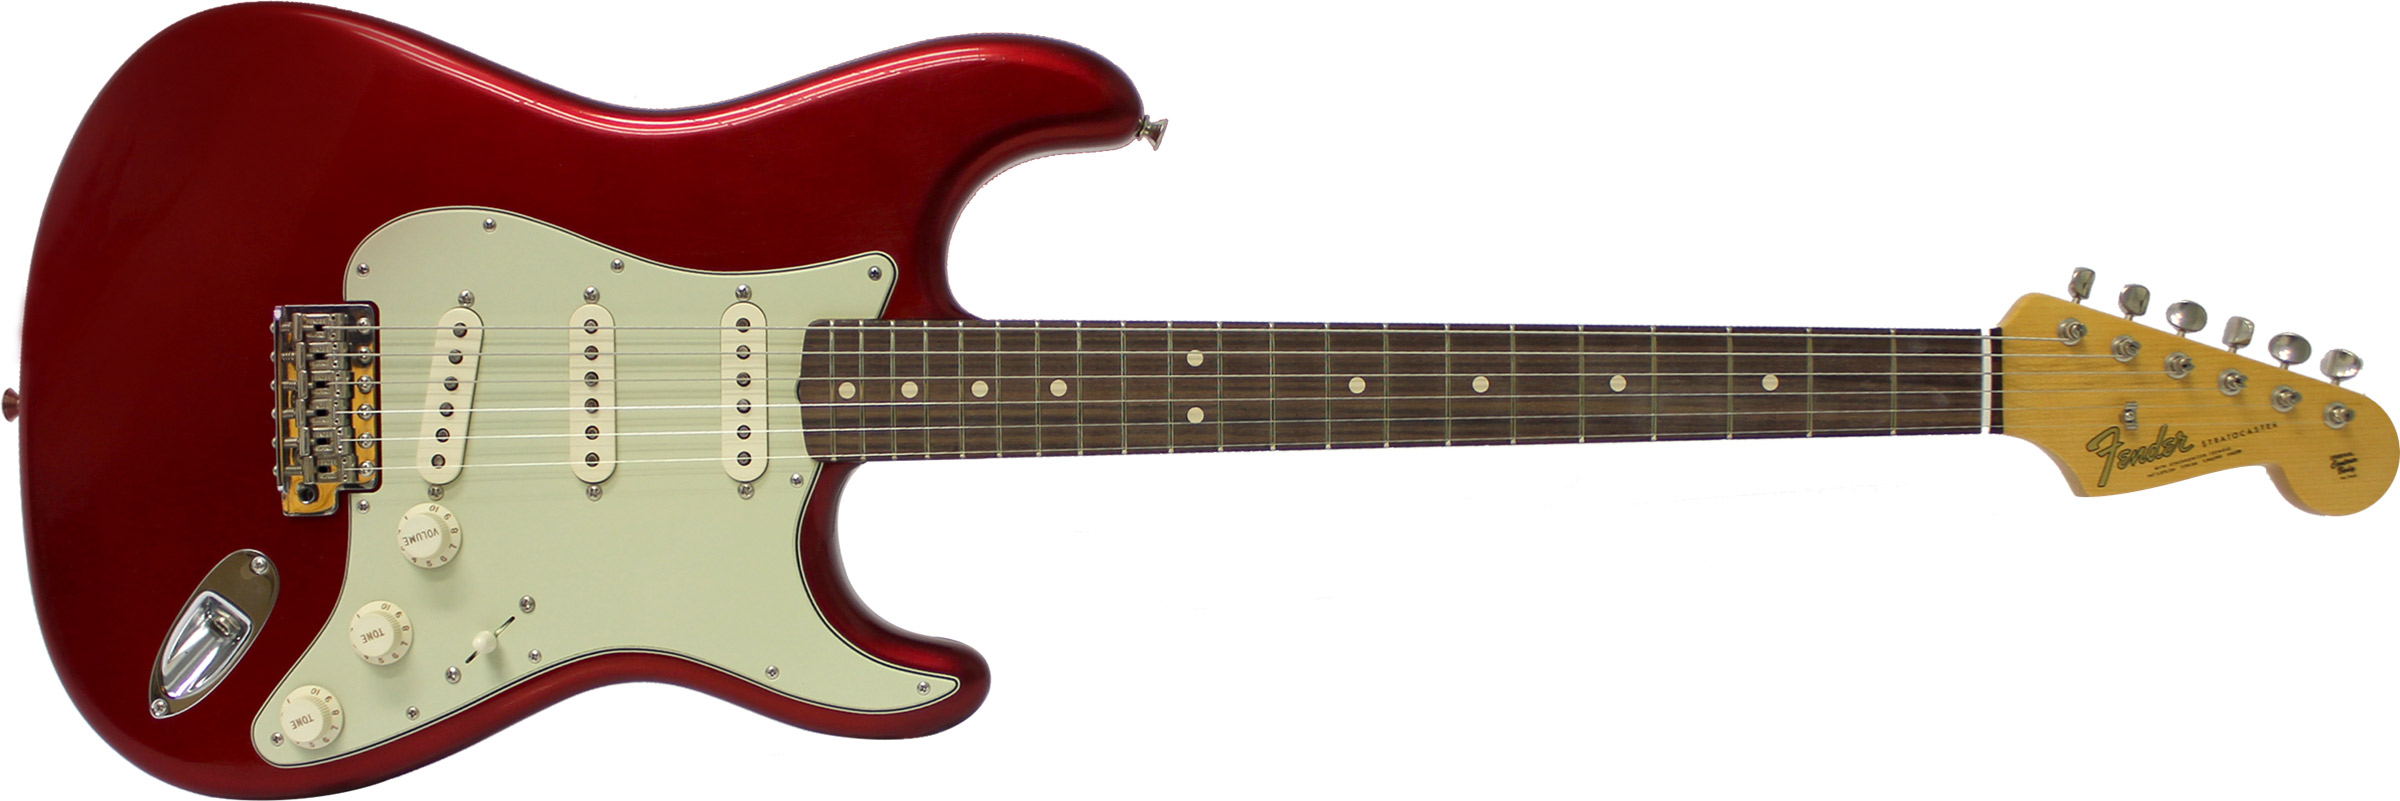 GUITARRA FENDER 151 9640 - 64 STRATOCASTER ANNIVERSARY CLOSET CLASSIC - 809 - CANDY APPLE RED